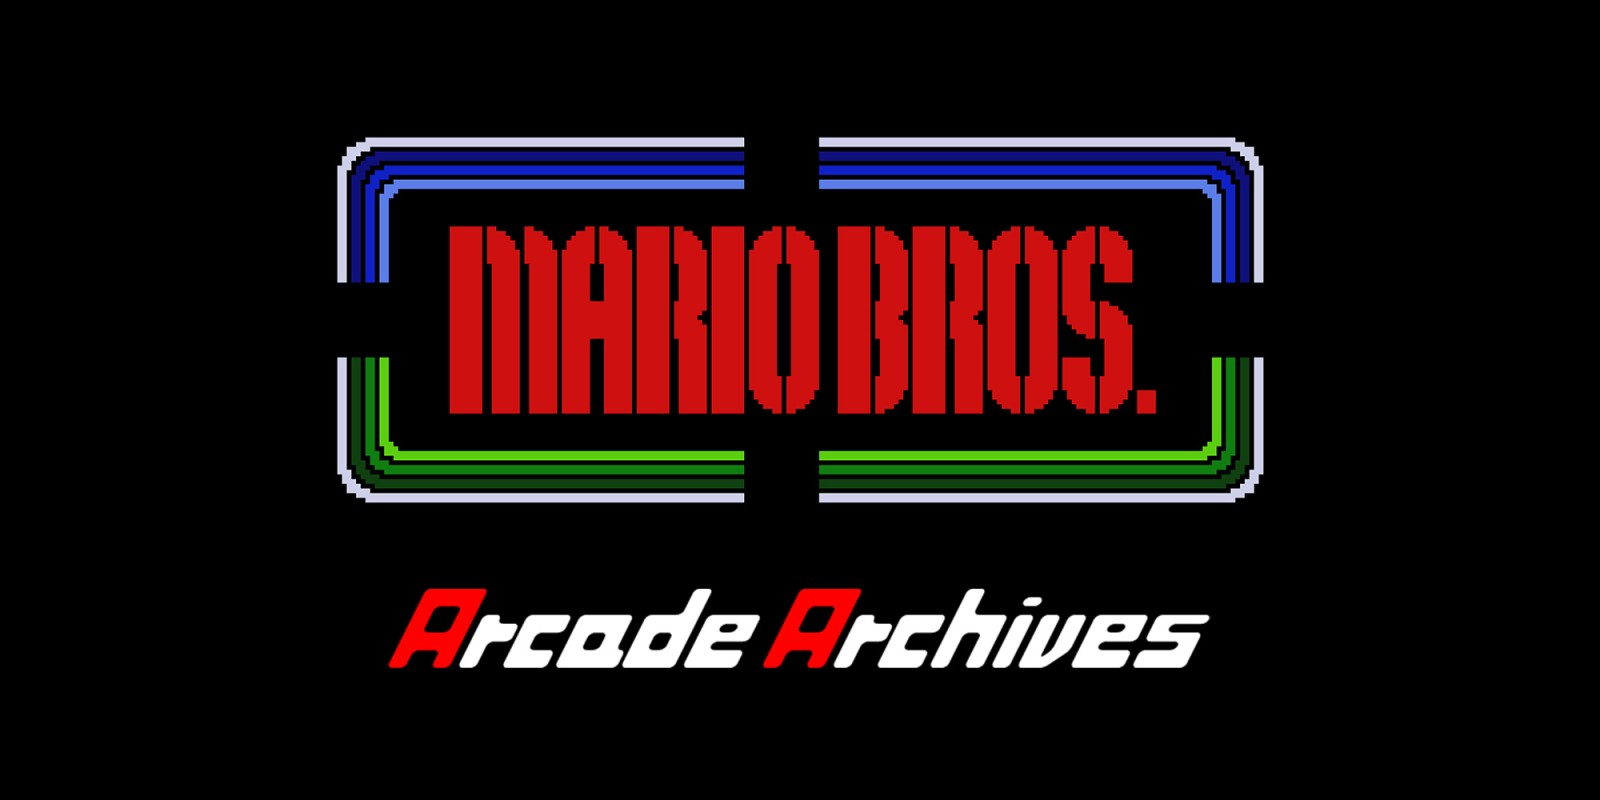 Arcade Archives Mario Bros Programas Descargables Nintendo Switch